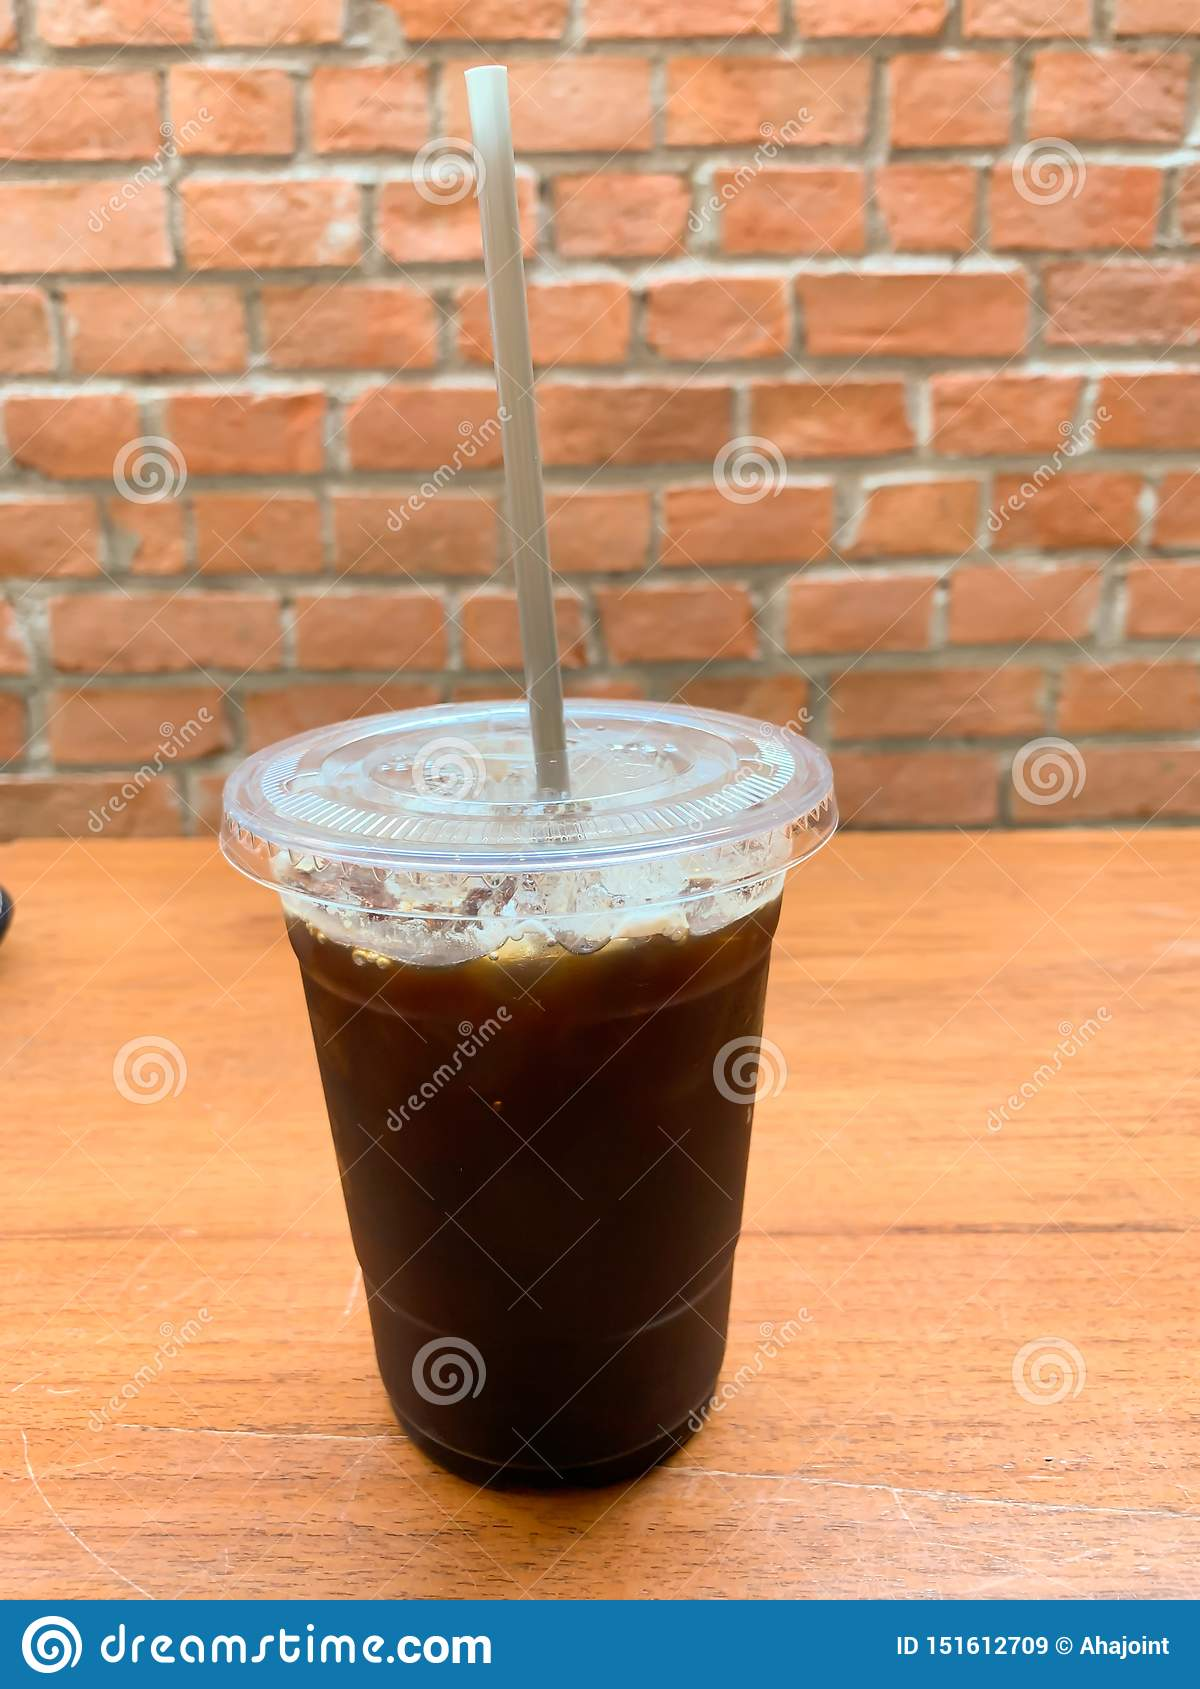 Black coffee on the table background